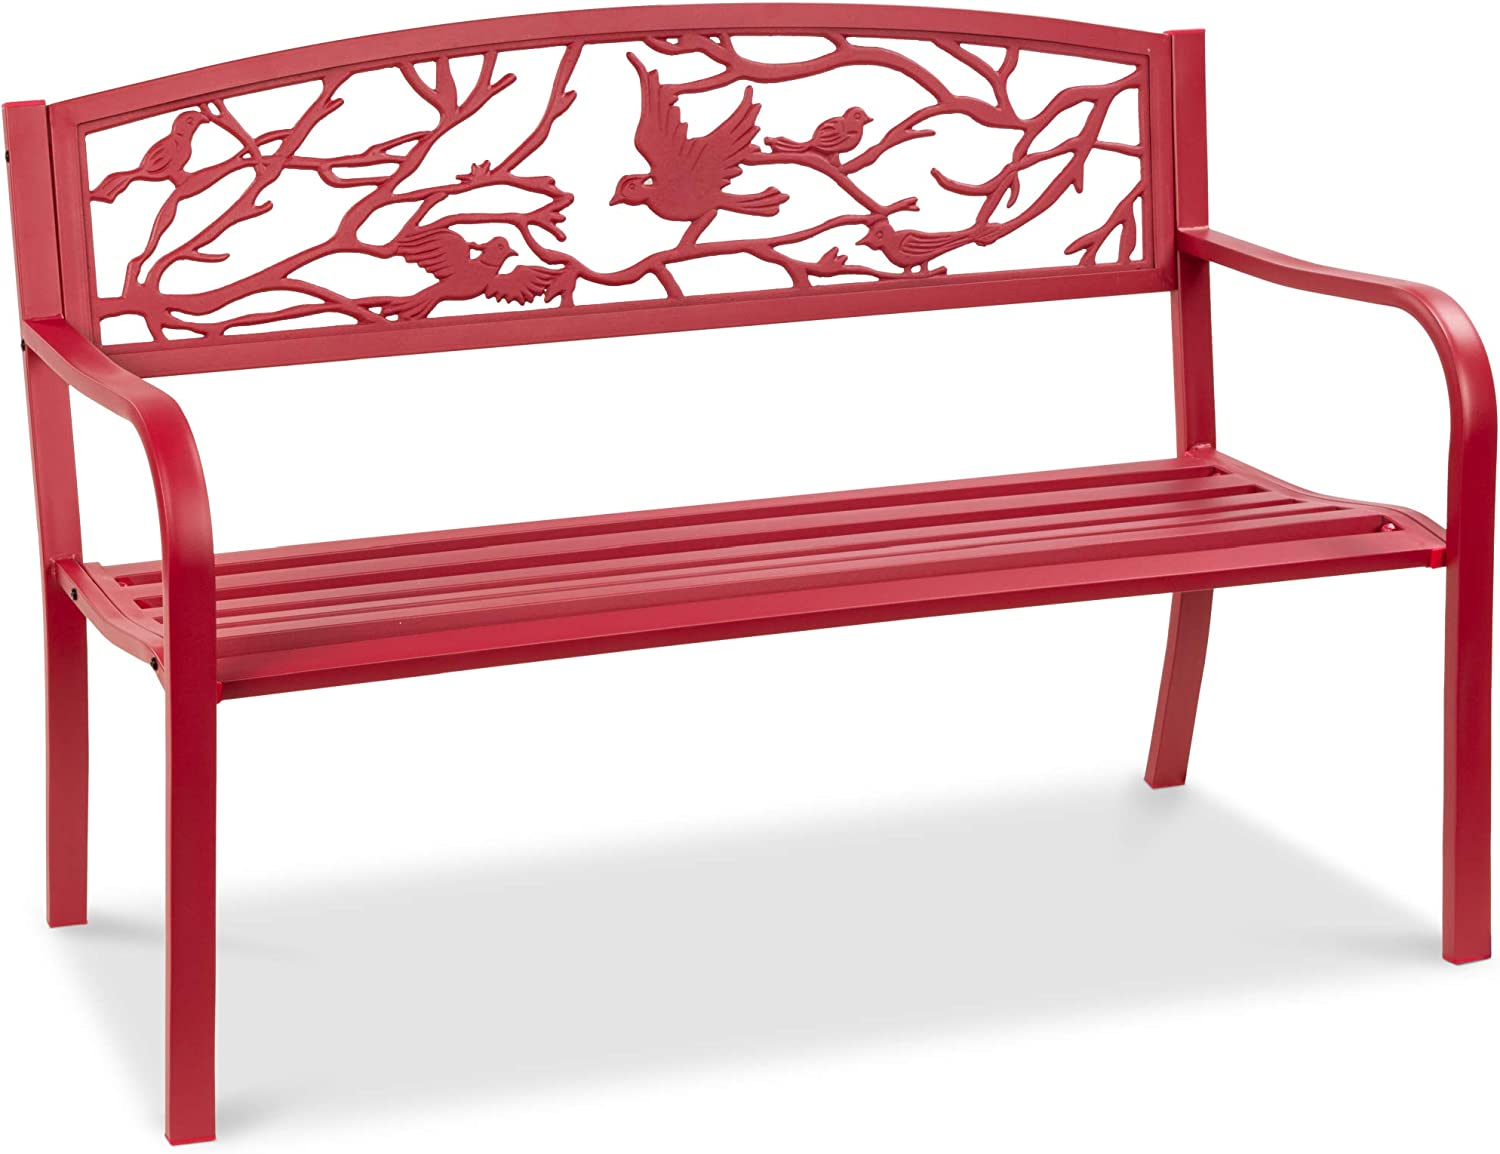 Best Choice Products Outdoor 10in Steel Park Bench Porch Chair Yard  Furniture w/Pastoral Bird Design Backrest, Slatted Seat - Red